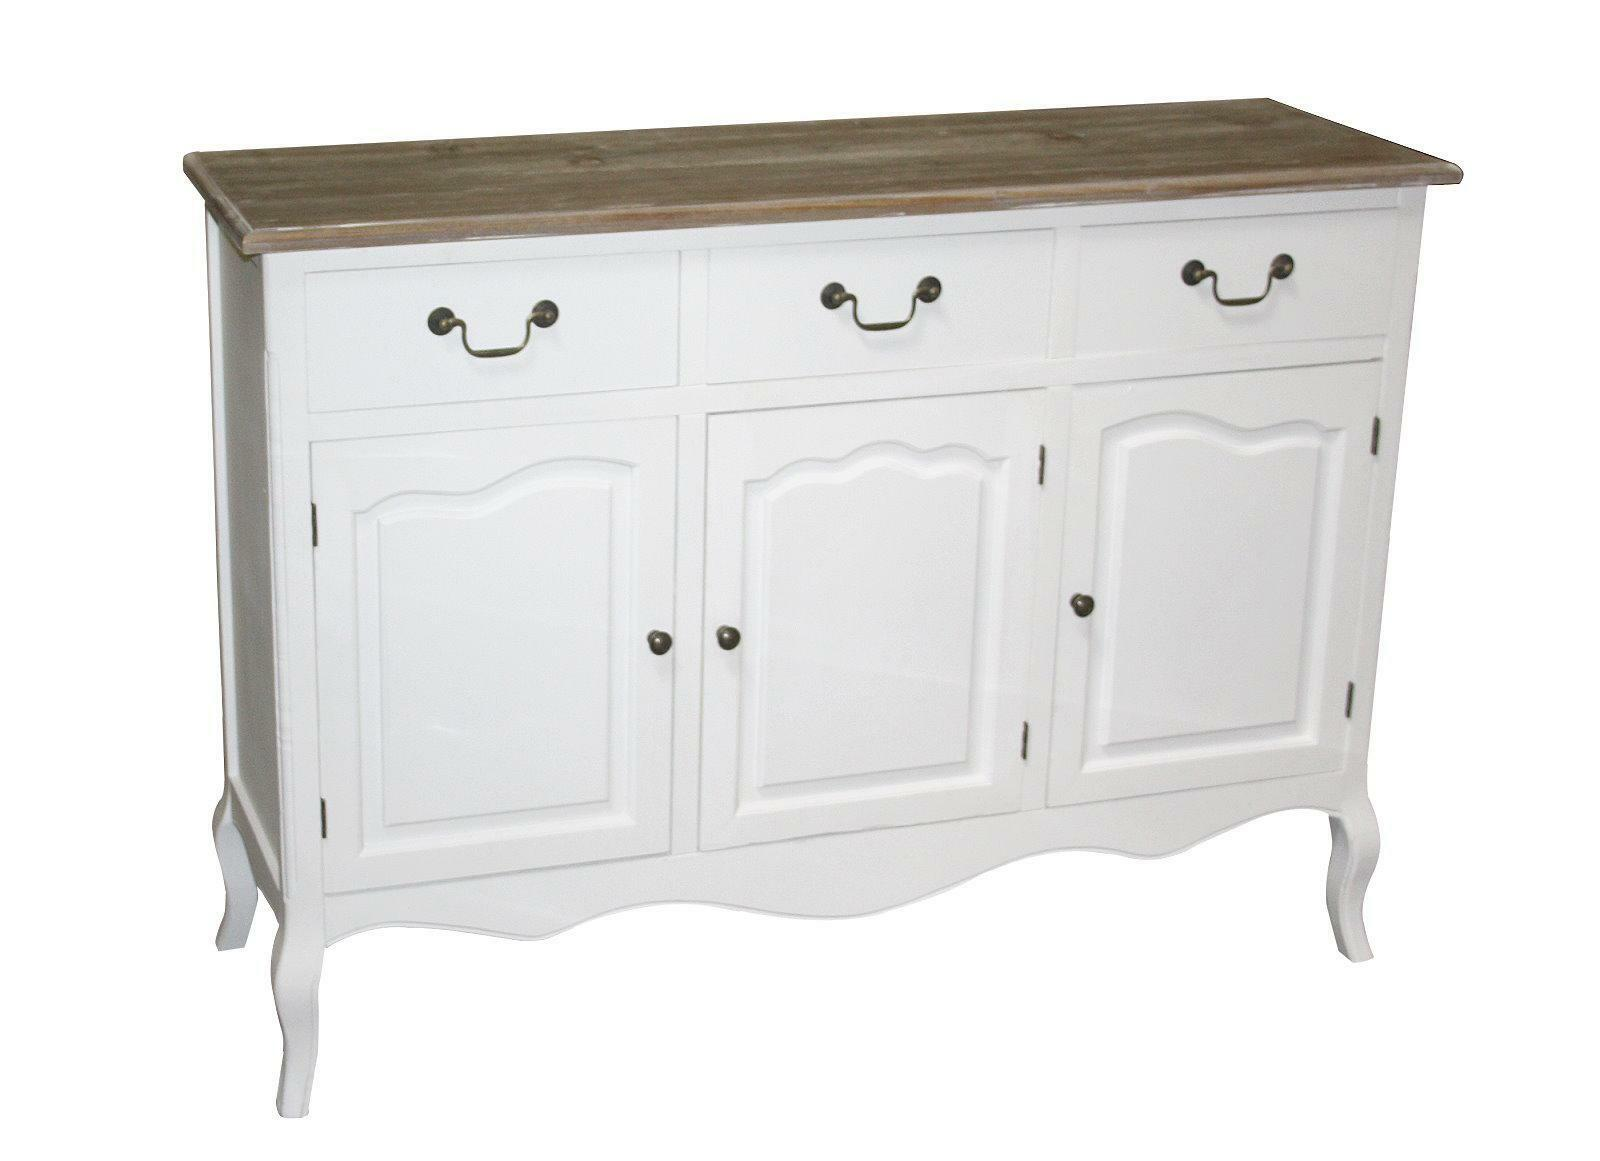 maison belfort kommode mauriac ii shabby look sideboard. Black Bedroom Furniture Sets. Home Design Ideas